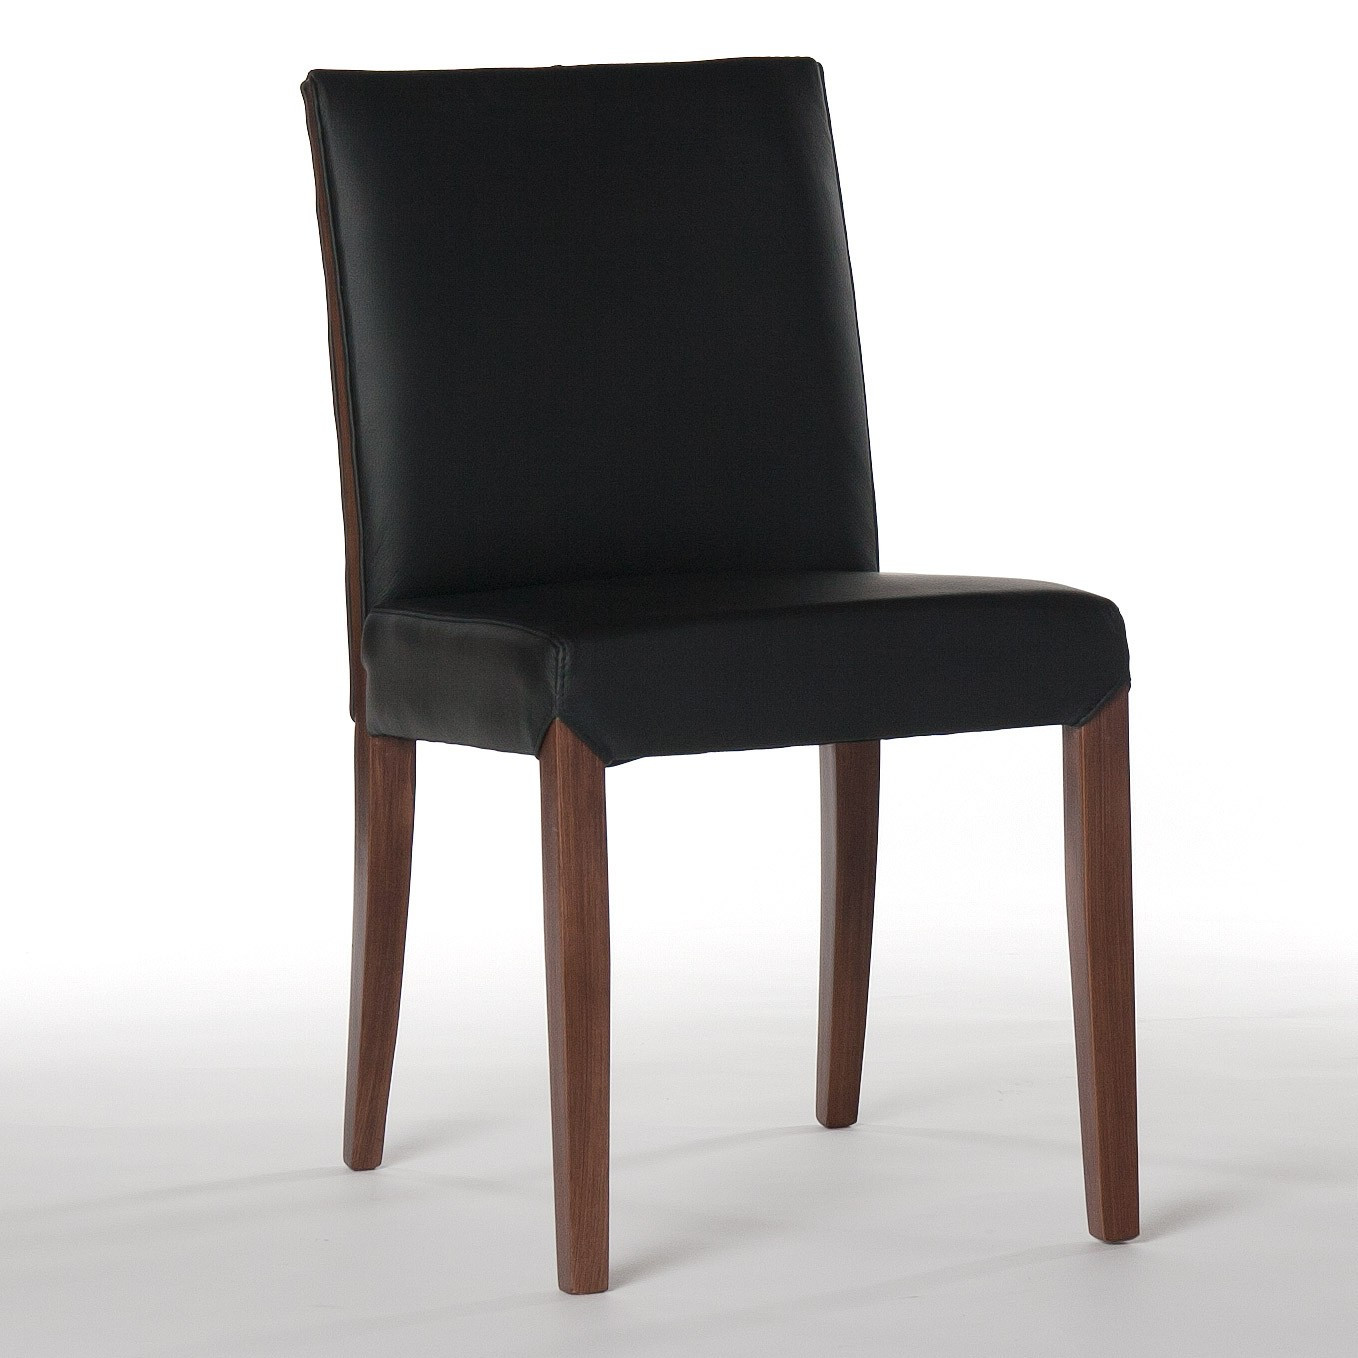 Best ideas about Leather Dining Chair . Save or Pin Real Leather Dining Chair in Black Now.